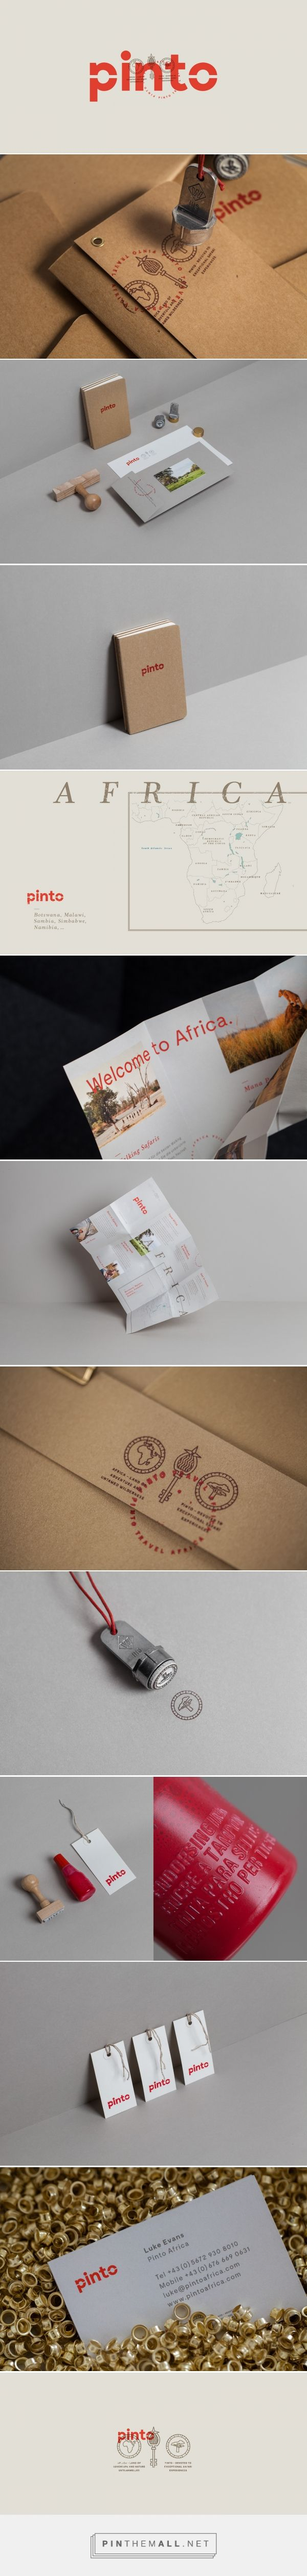 Pinto – Travel Africa on Behance... - a grouped images picture - Pin Them All